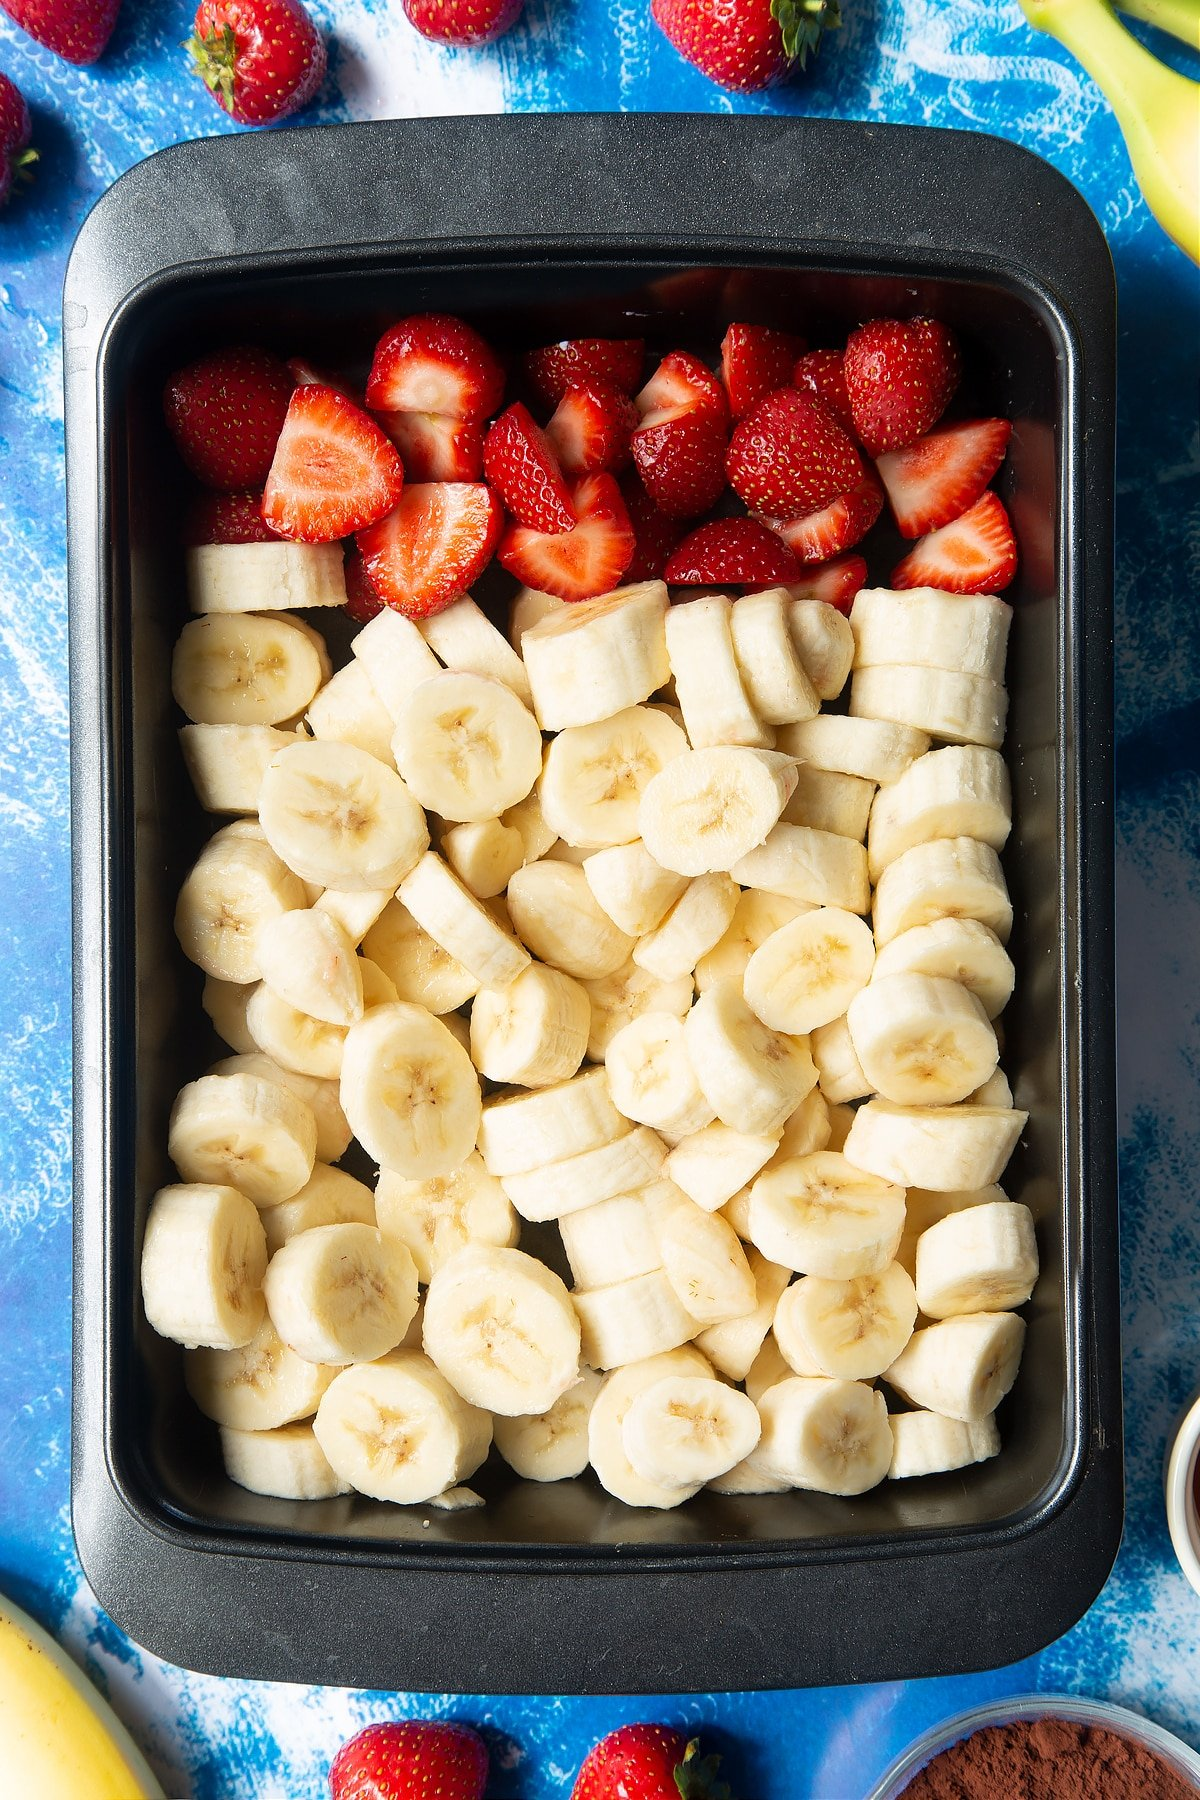 Sliced bananas and strawberries in a tray.